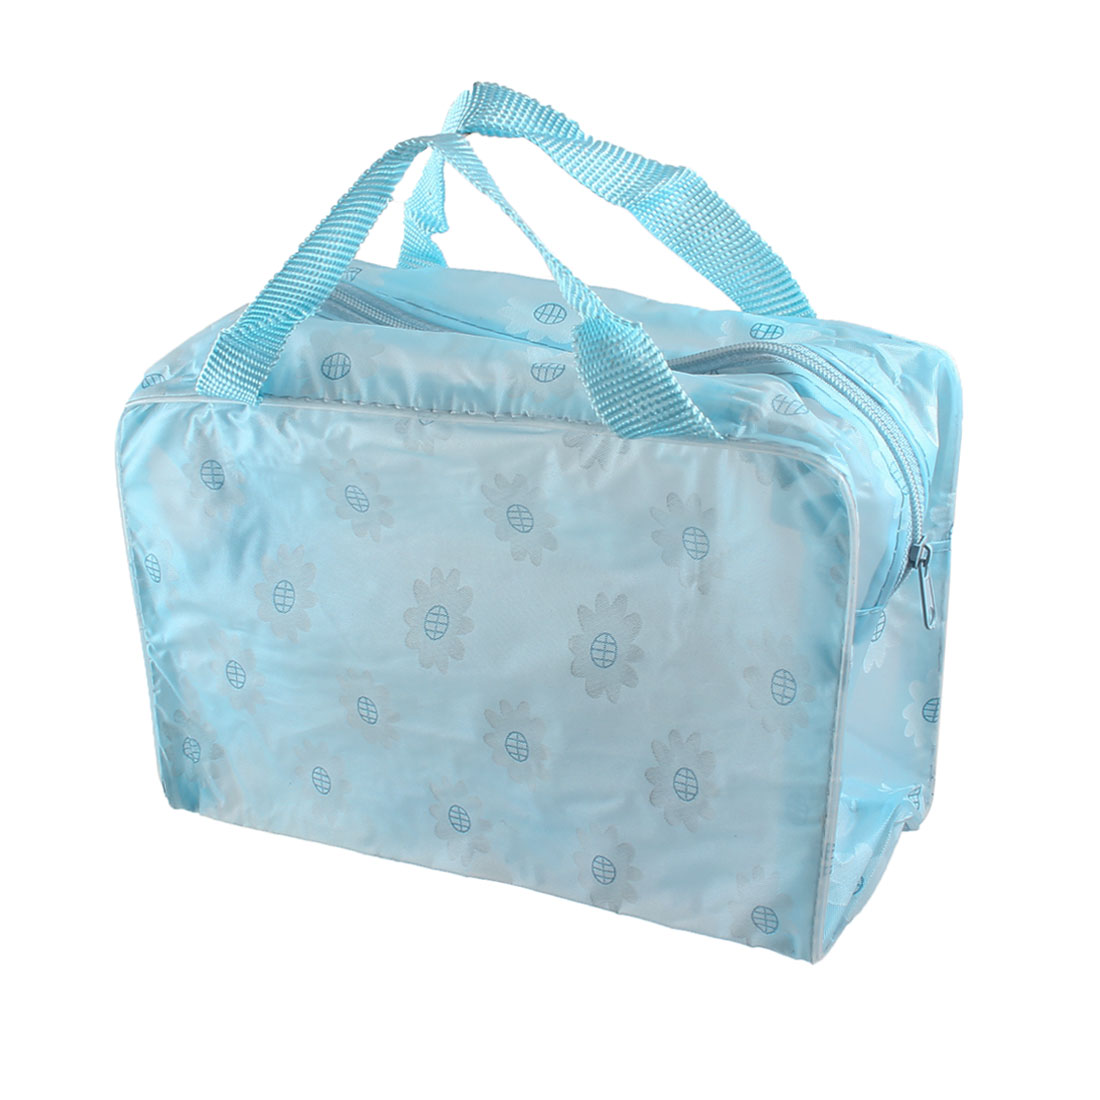 Blue Sunflower Decor Water Resistant Bathing Shower Tote Handbag